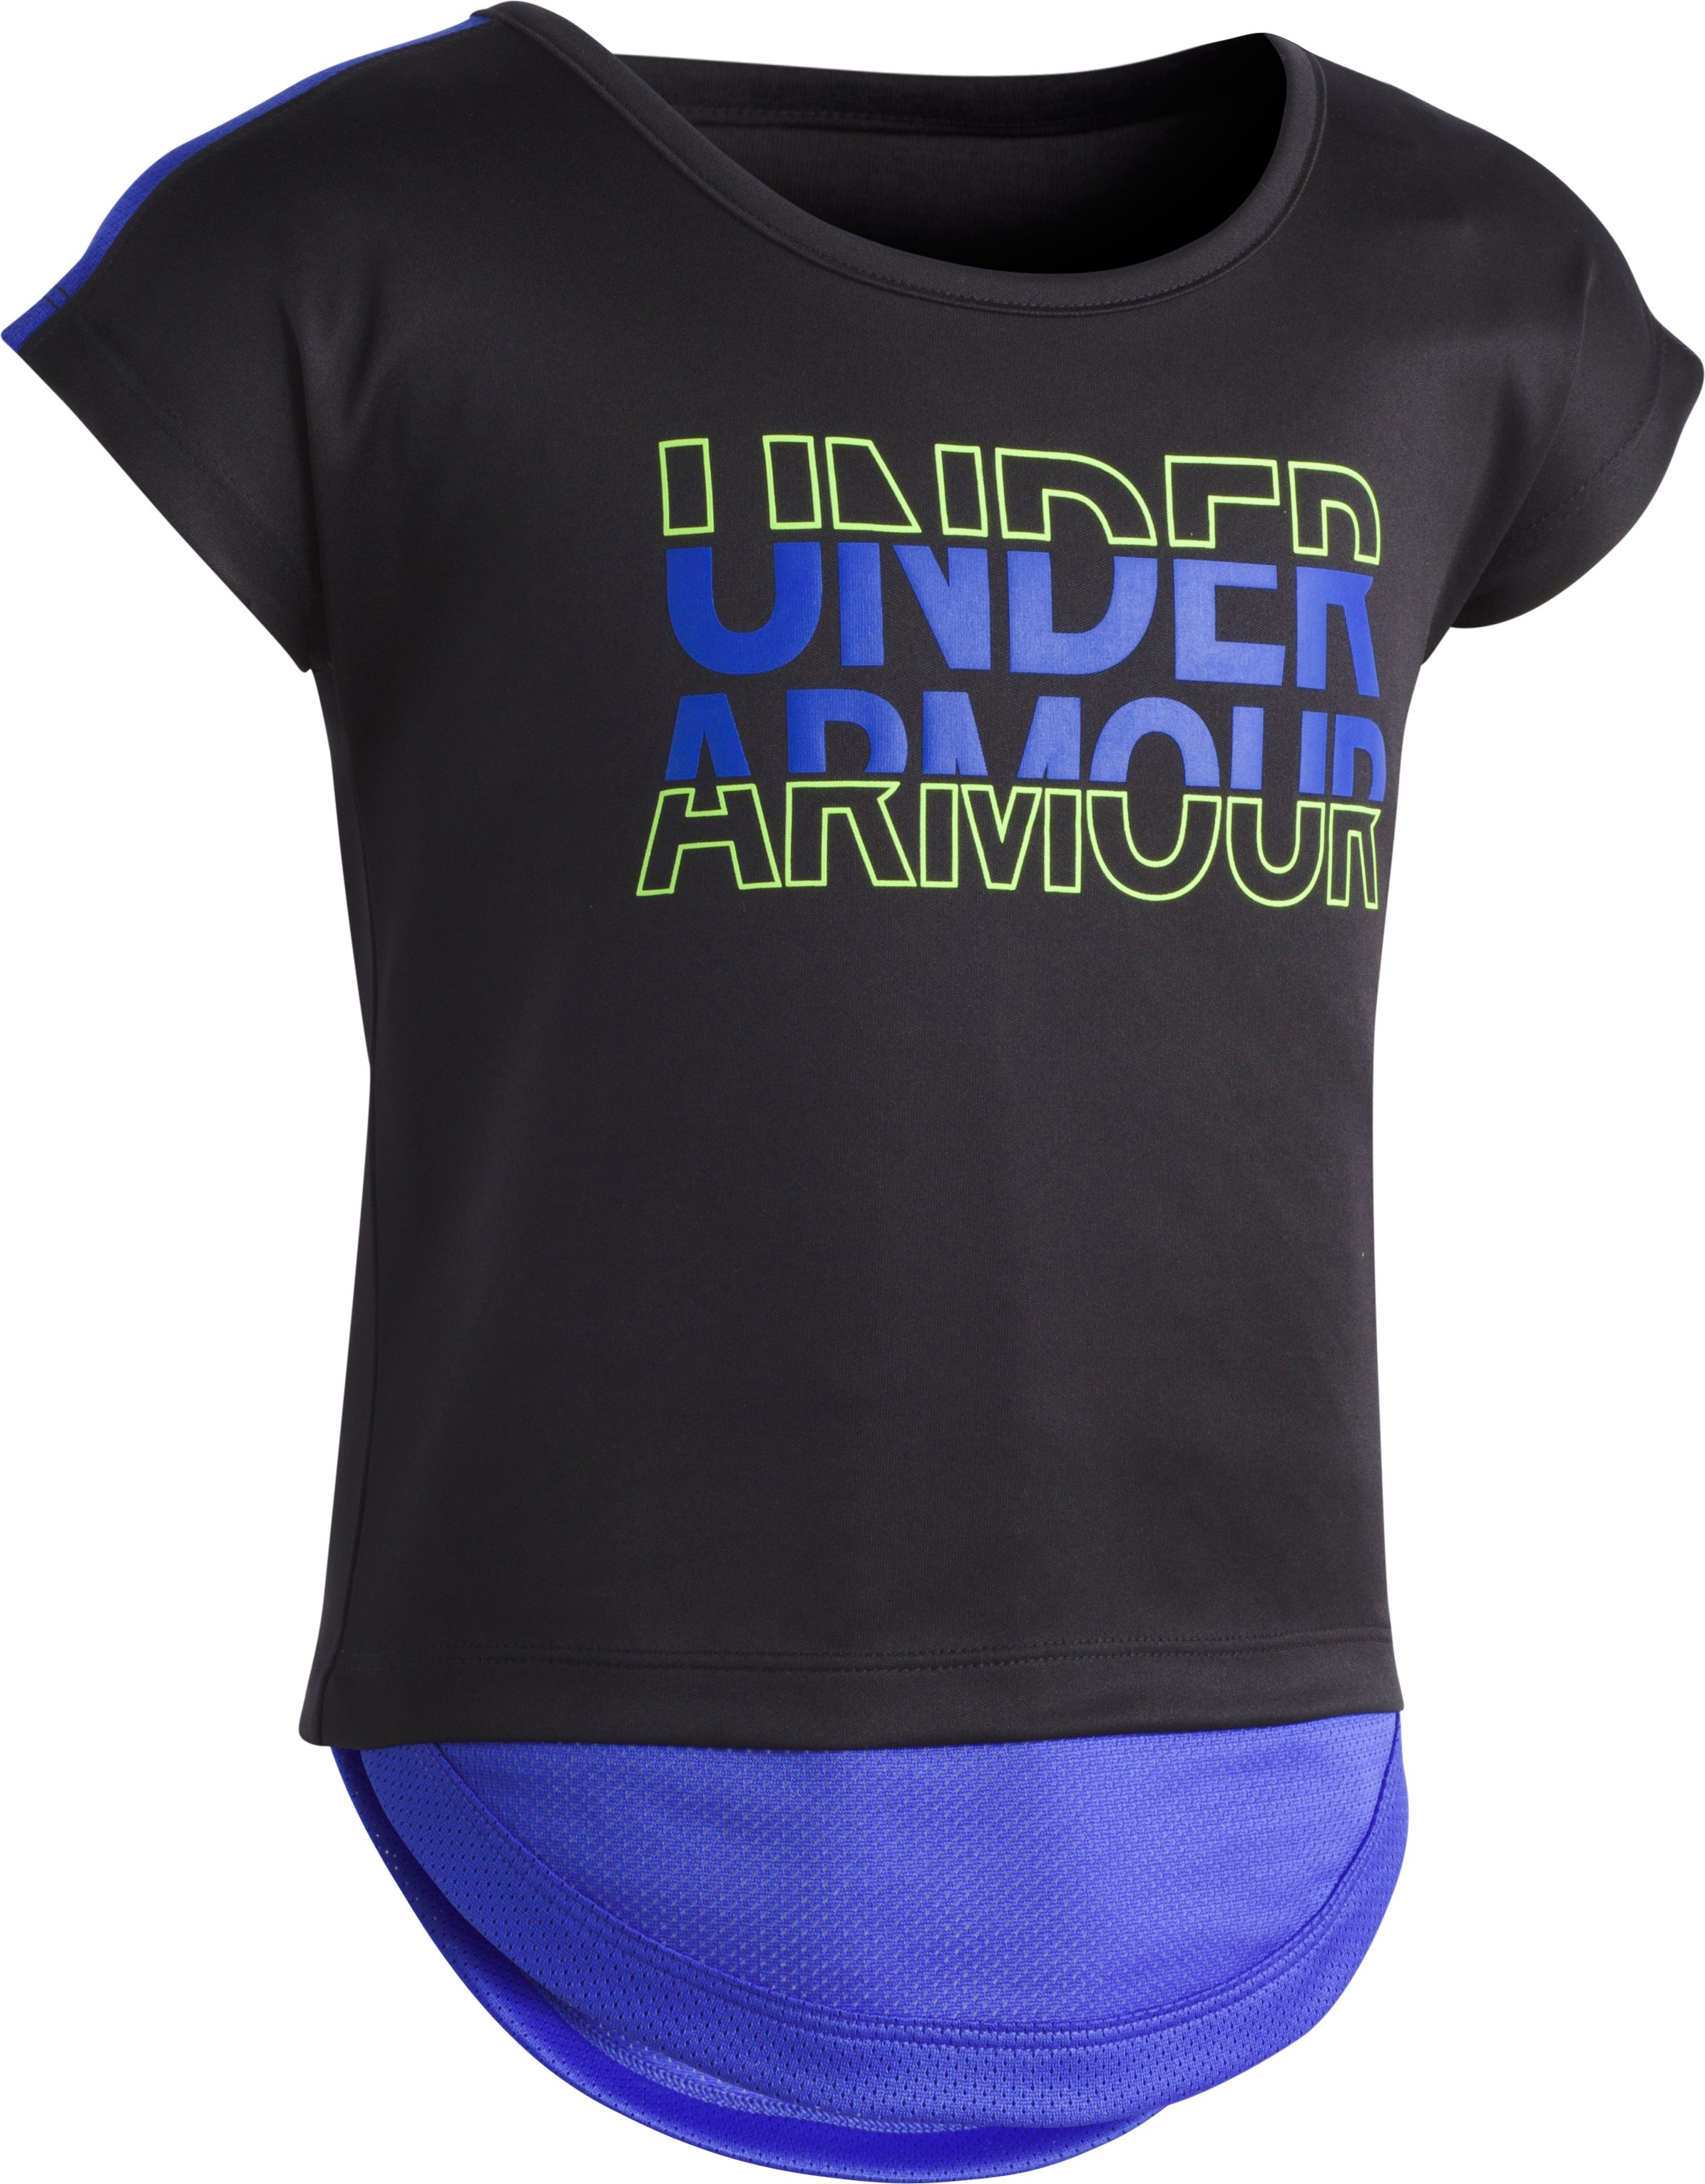 Girls' Pre-School Under Armour T-Shirt  2 Colors $17.99